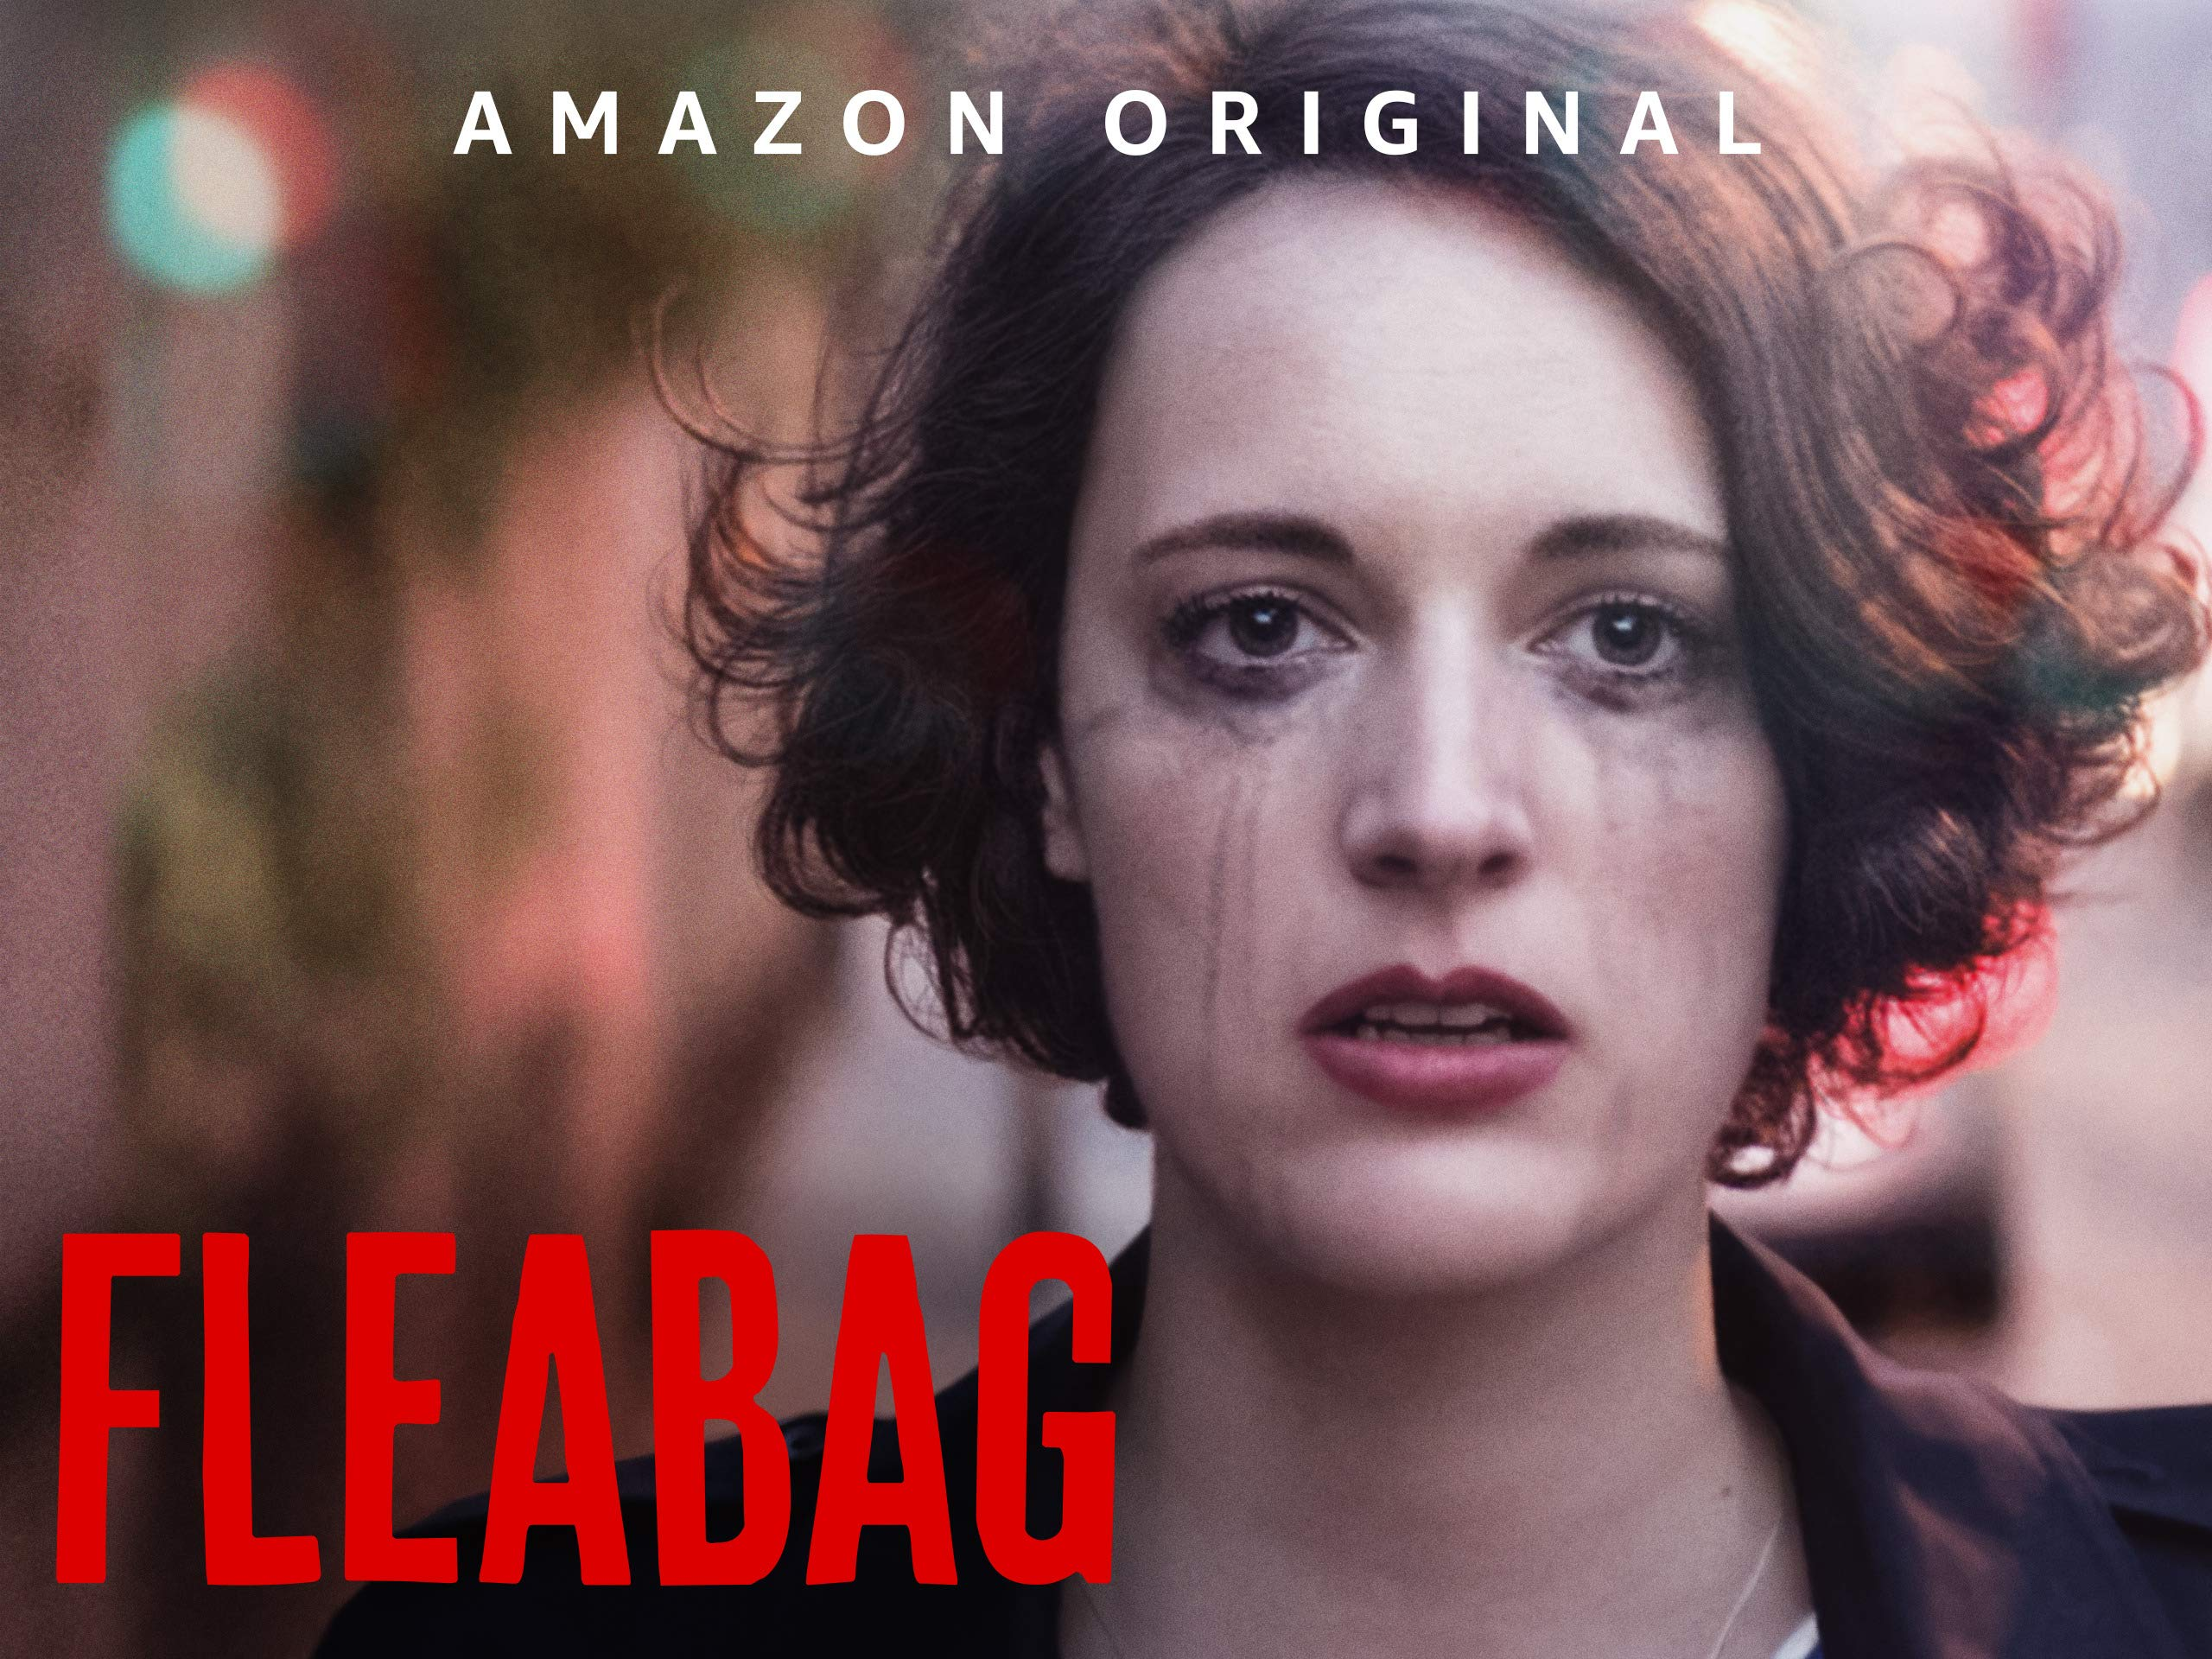 Amazon com: Watch Fleabag Season 1 | Prime Video